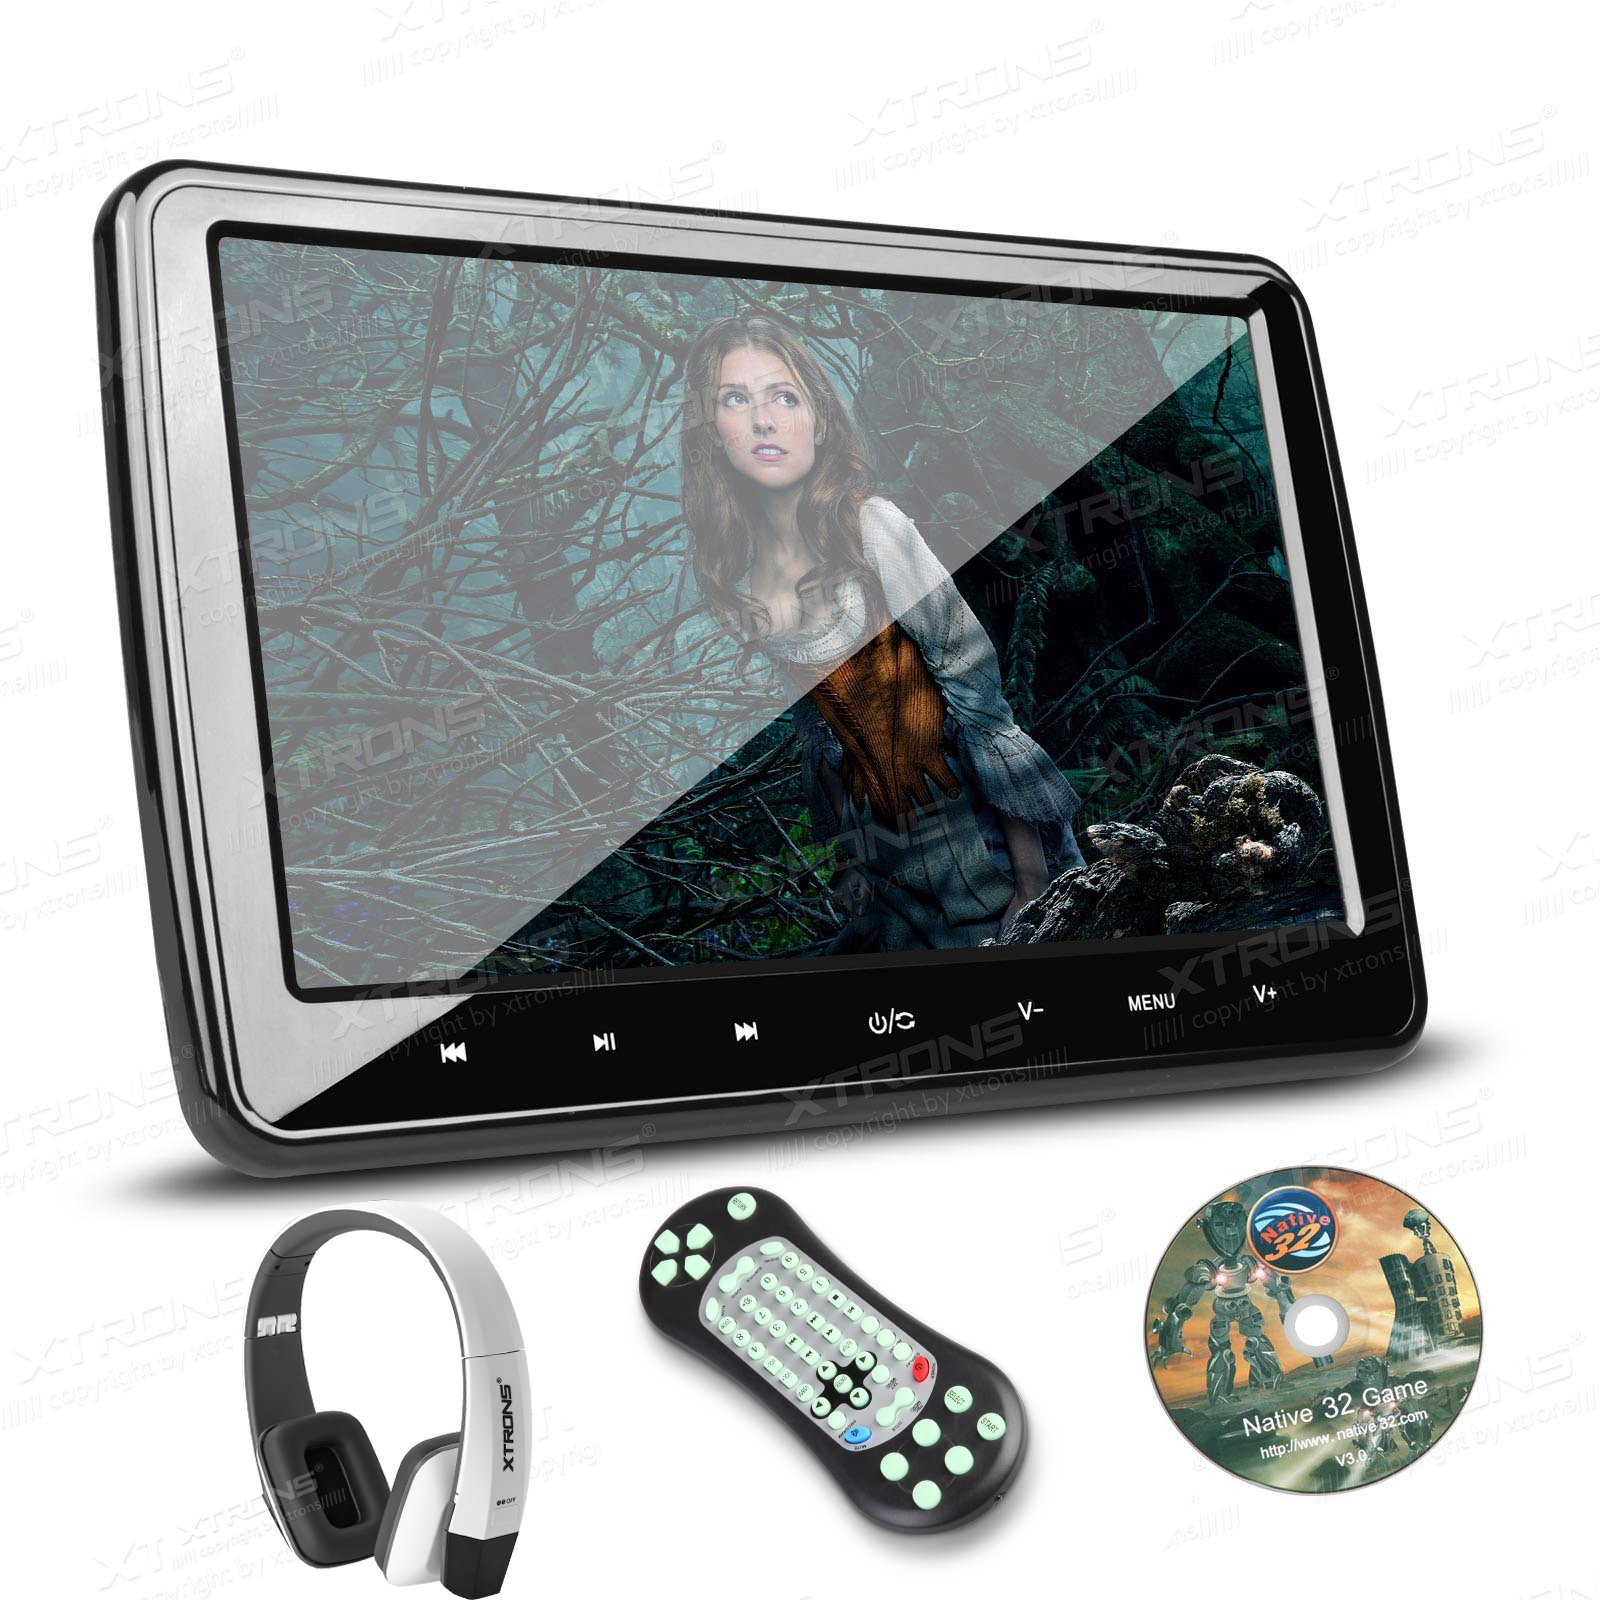 XTRONS 10.1 Inch HD Digital Screen Car Headrest DVD Player Ultra-Thin Detachable Touch Button with HDMI Port One New Version White IR Headphone Included